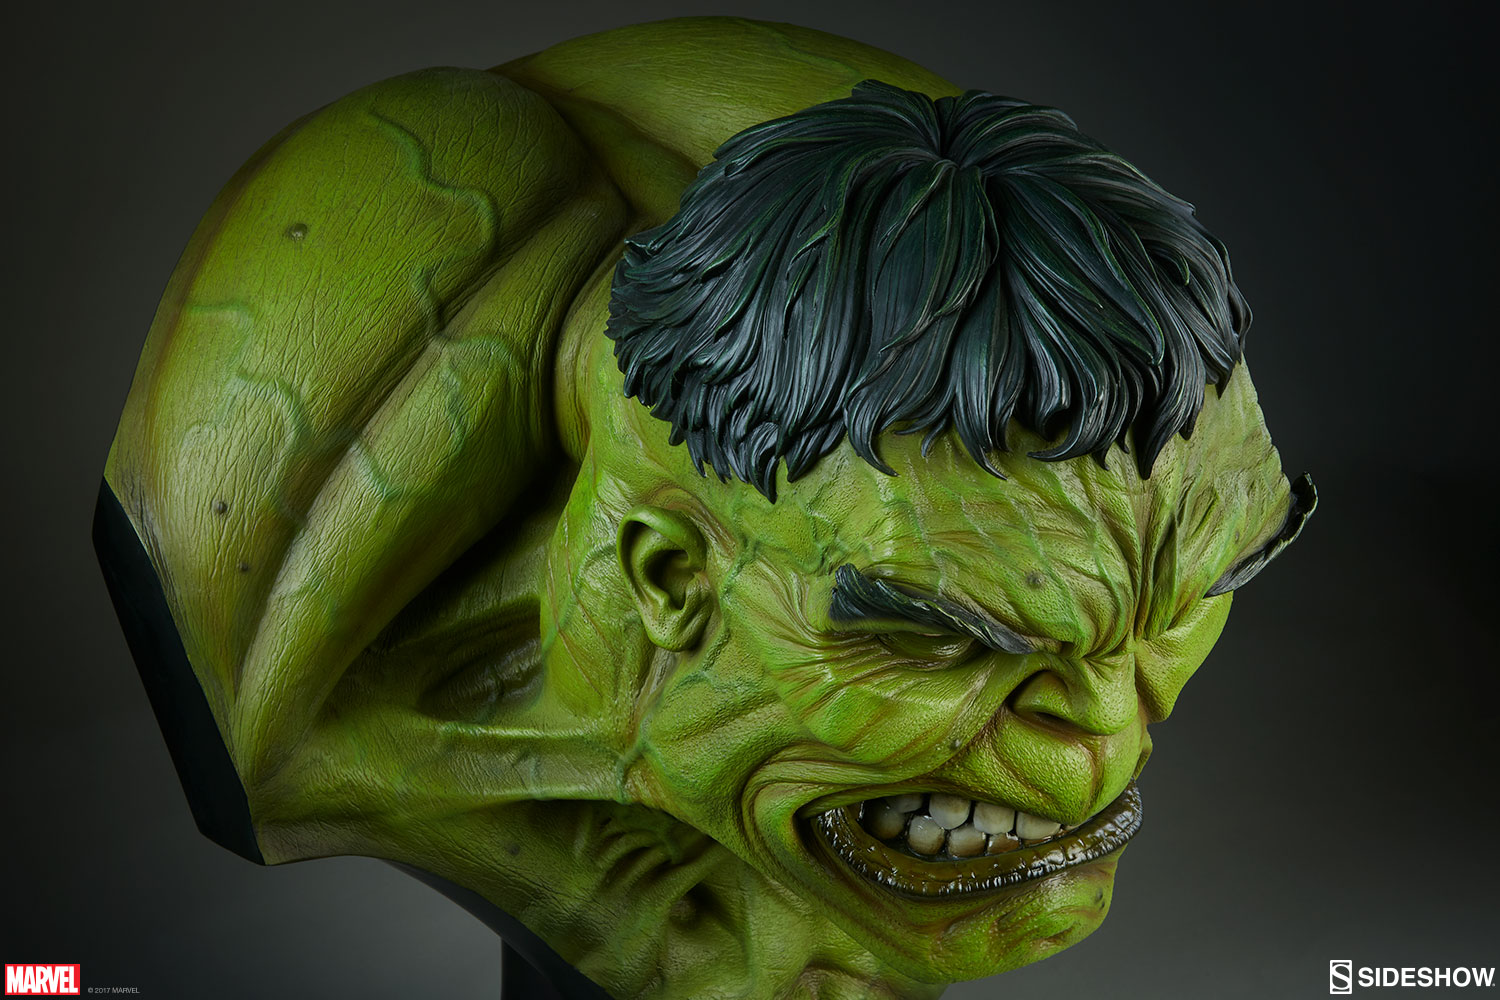 Marvel The Incredible Hulk Life Size Bust by Sideshow Collec         The Incredible Hulk Life Size Bust